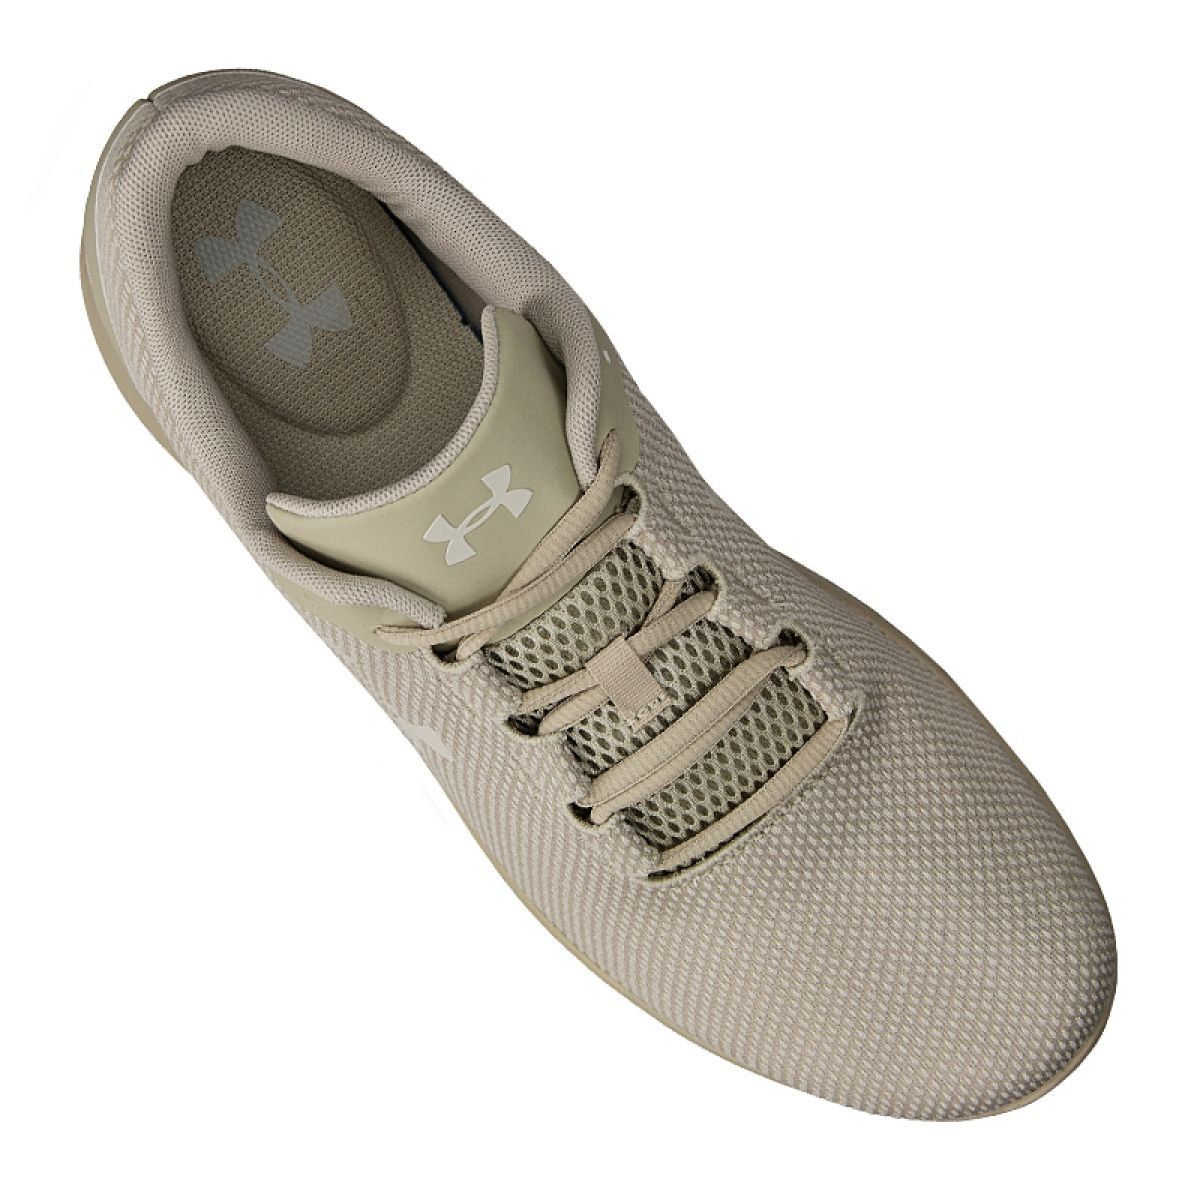 Buty Under Armour Remix Fw18 M 3020345 200 Bezowy Under Armour Shoes Under Armor